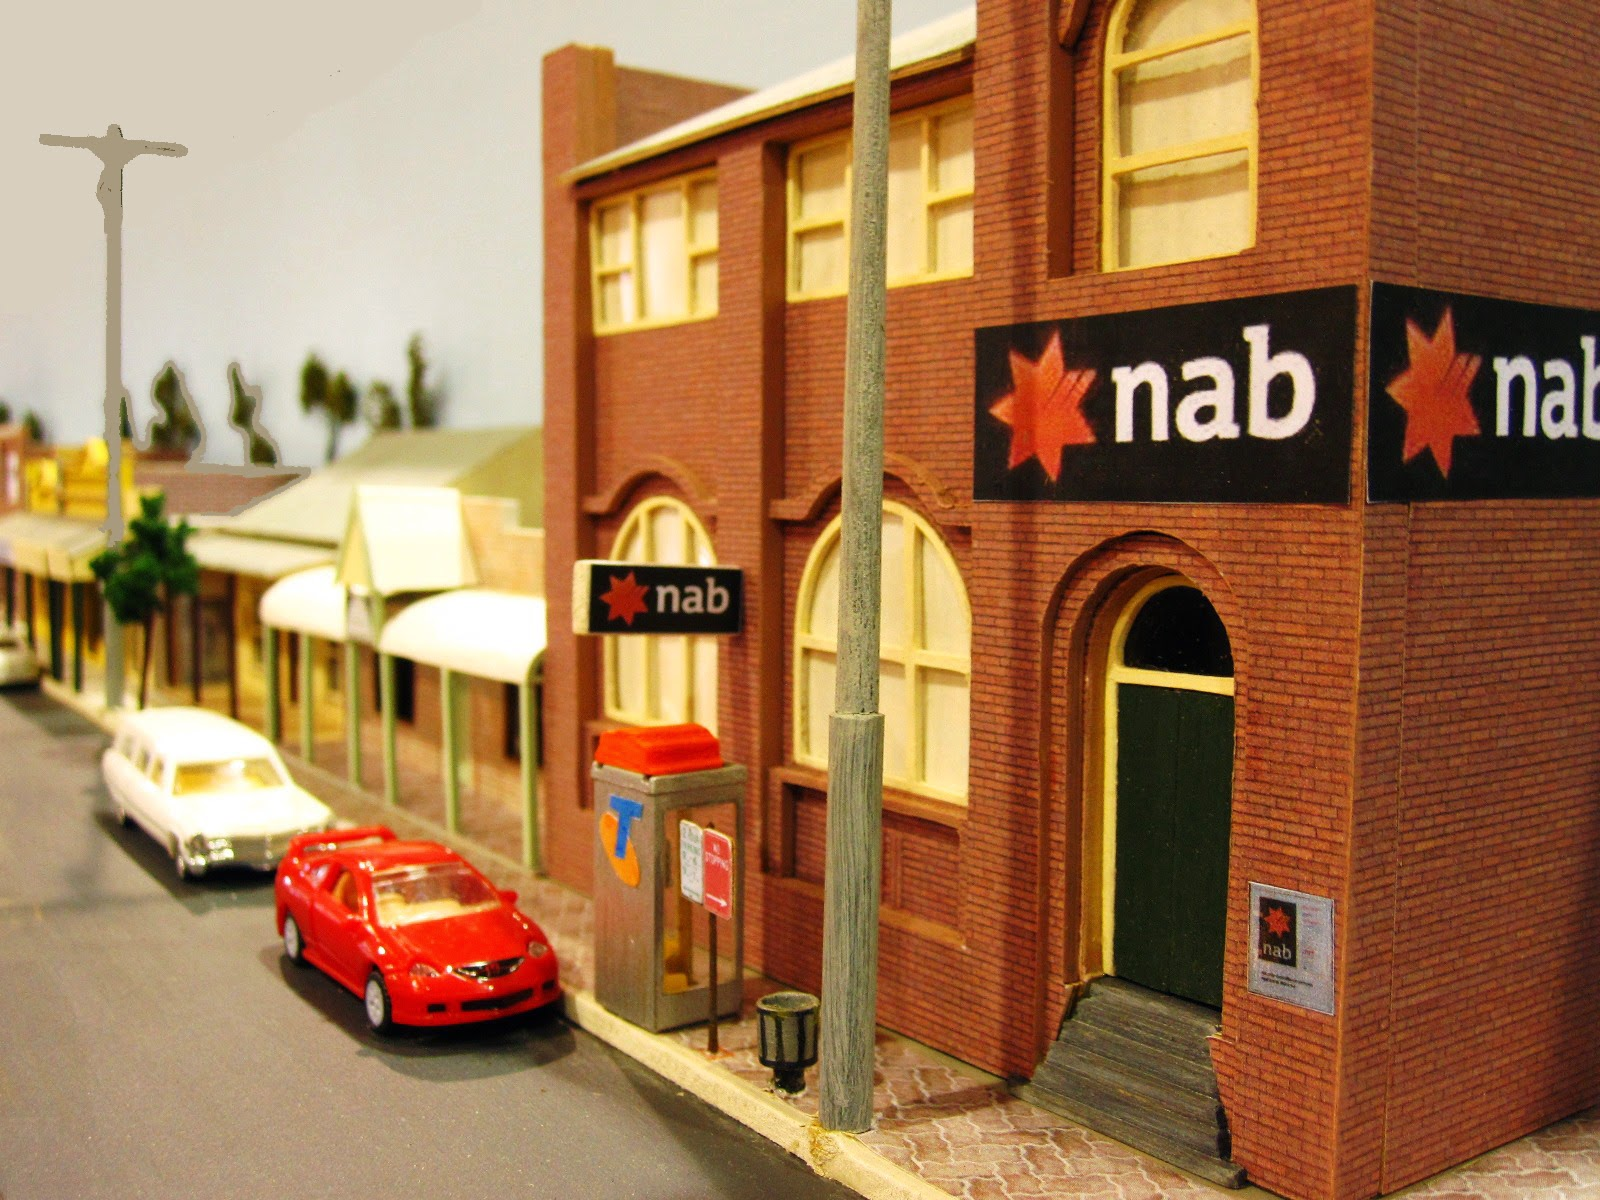 Quarter inch scale modern Australian town street scene with National Australia Bank building on the corner.